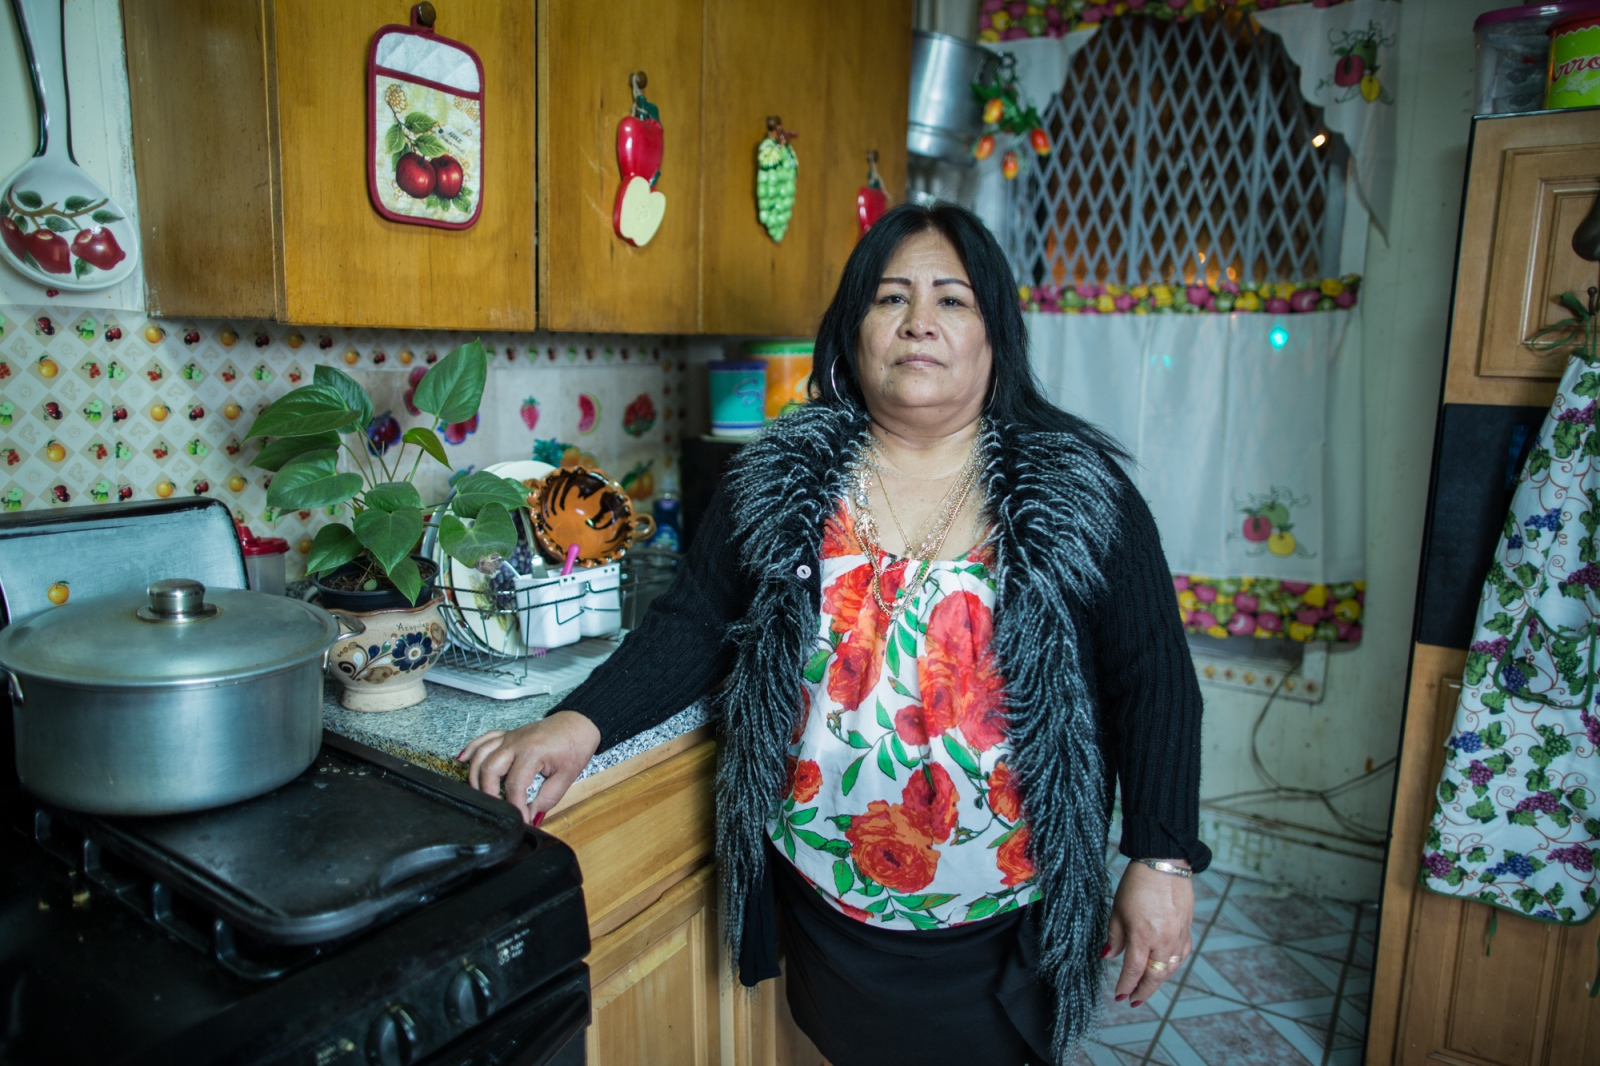 Juanita Torres de León , in the kitchen at her home on 59th. Street, Sunset Park, Brooklyn. She was born in Atencingo, Puebla, but 27 years ago she lives with her whole nuclear family in Sunset Park, Brooklyn, New York. Juanita is a member of  St. Jacobi 's Church and coordinator of the community kitchen. Juanita was part of the team that eventually came to be known as ¨Occupy Sandy¨ in 2012, feeding the volunteers who were helping hurricane victims.